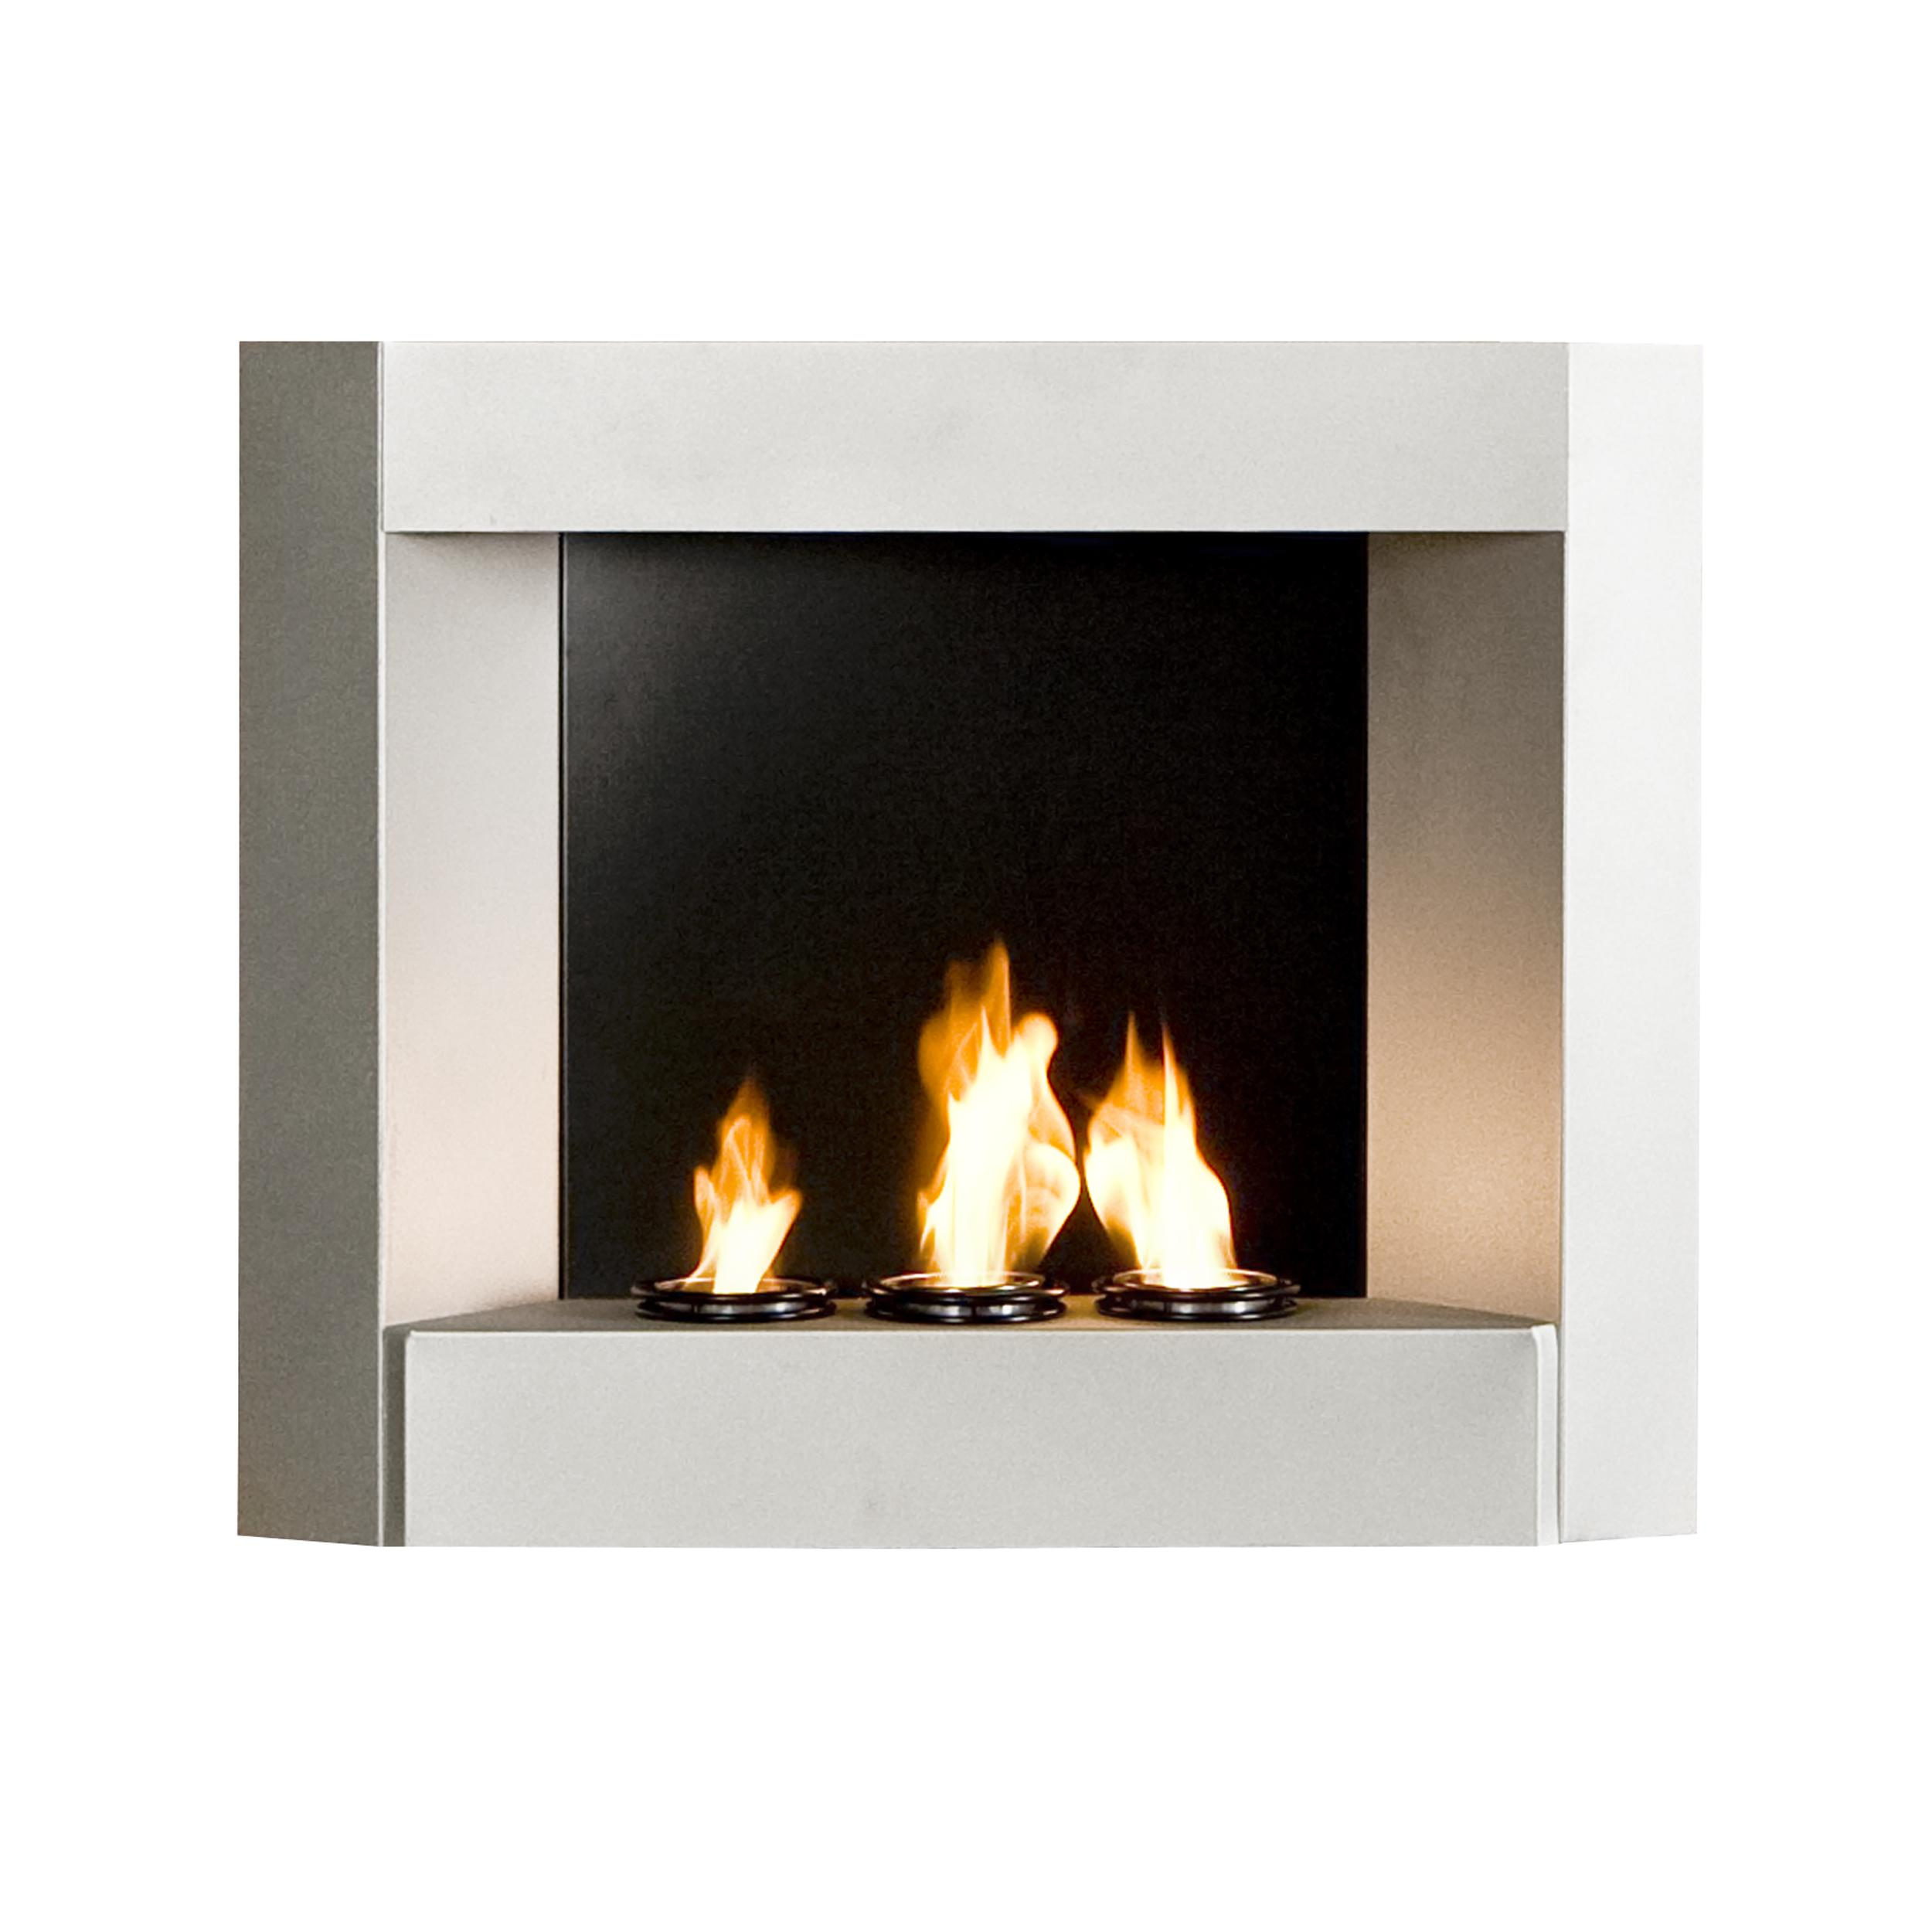 elegant myst decorating amazon cool insert fireplace opti home decoration electric with of design and gallery furniture